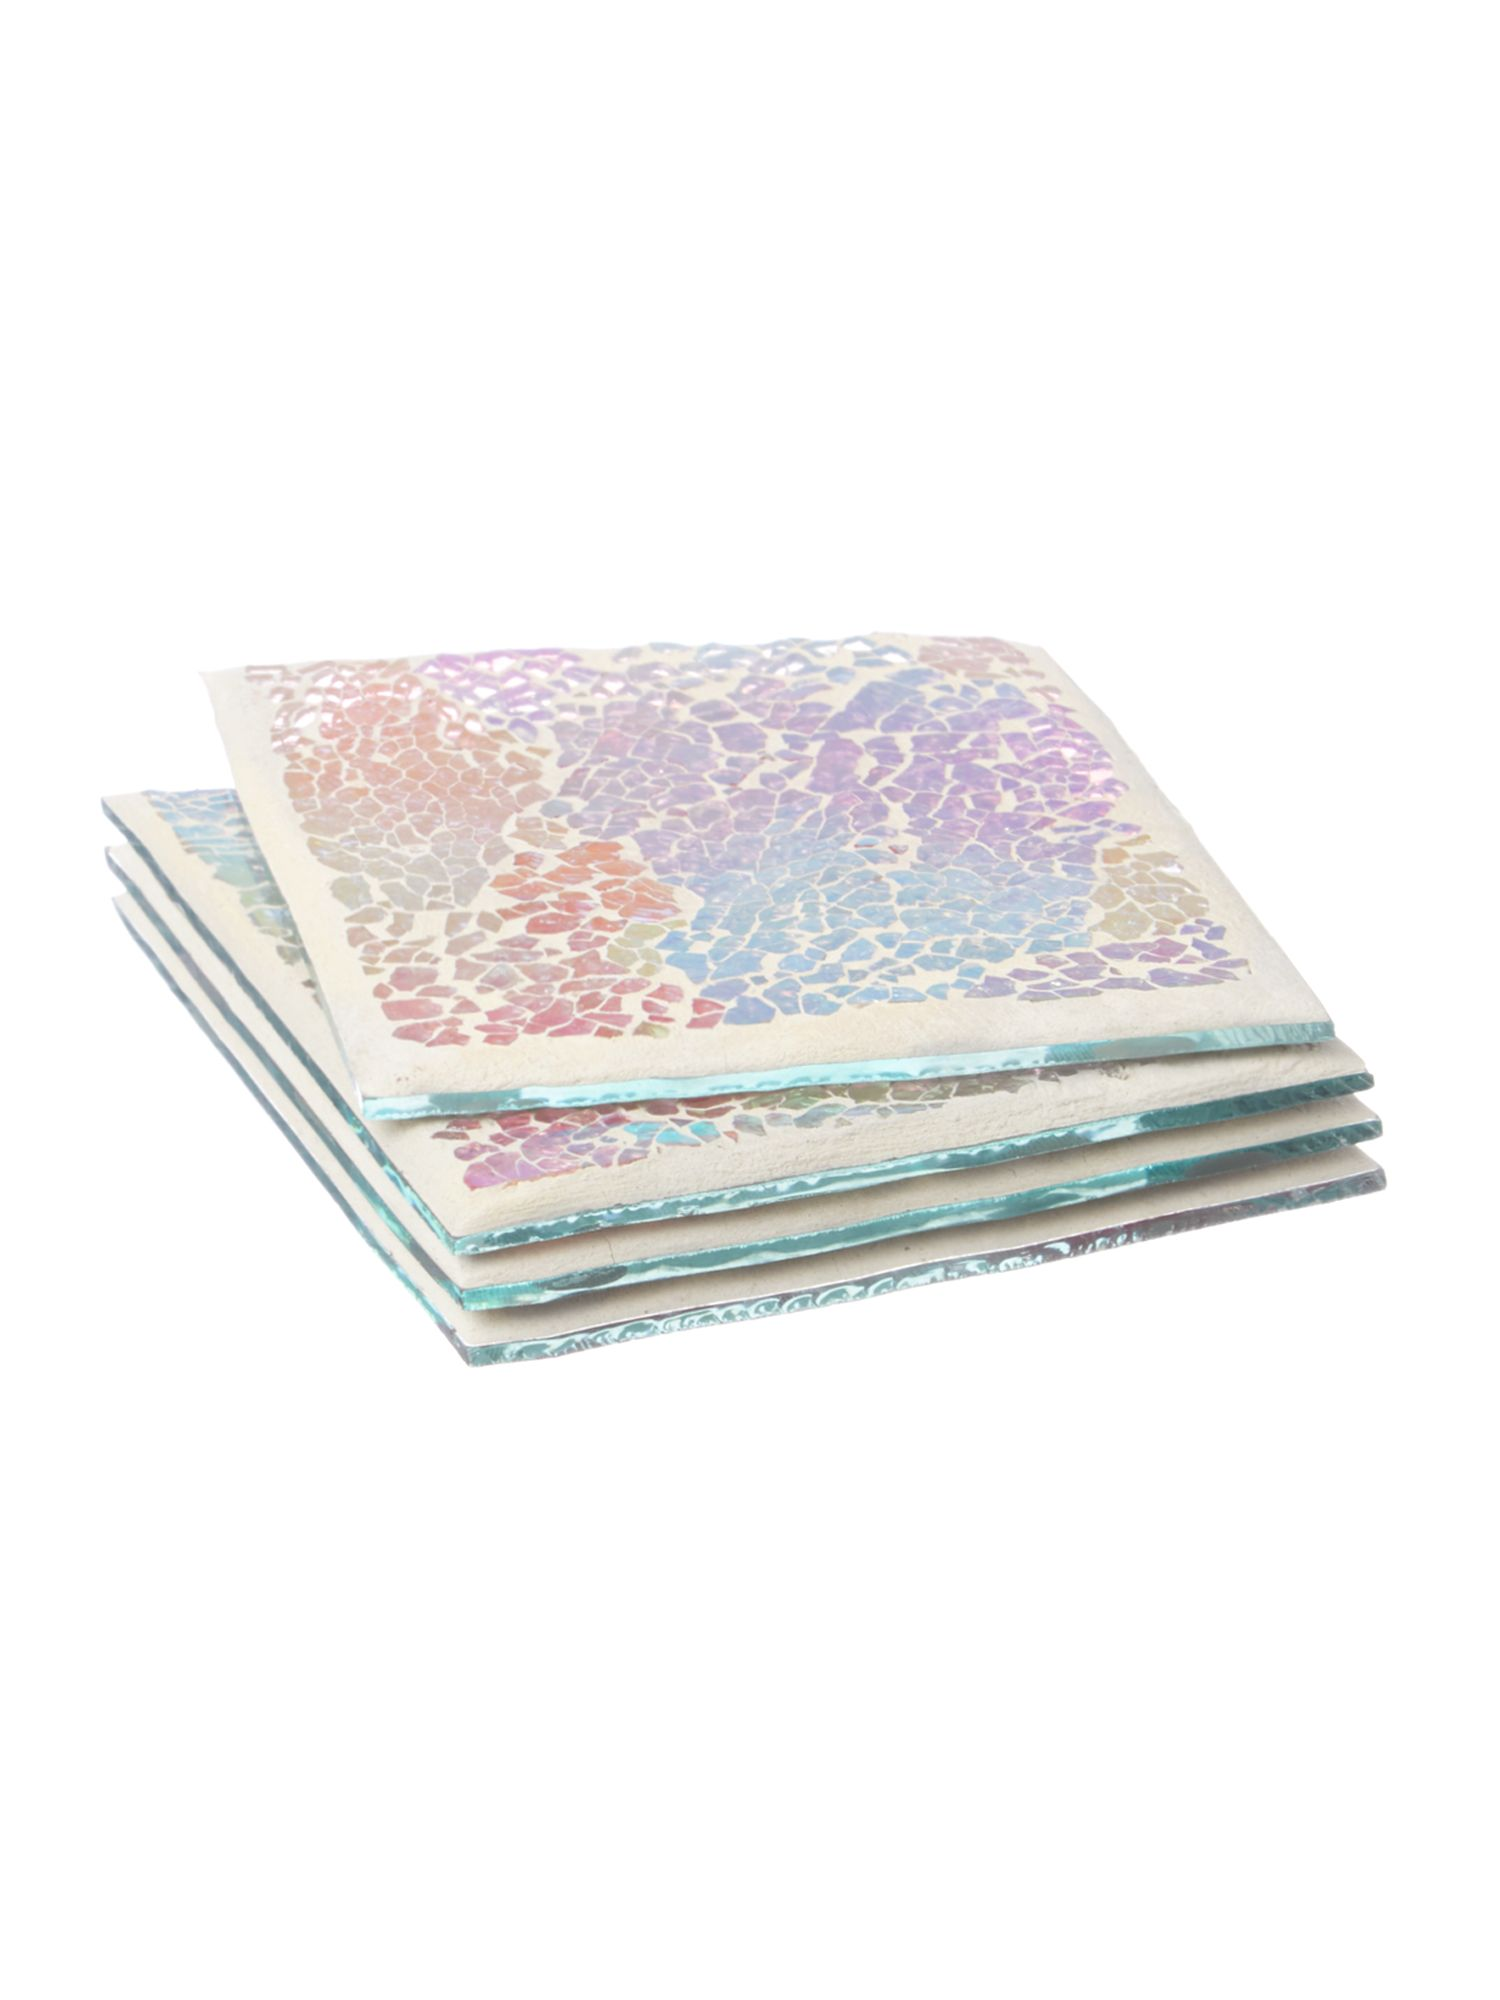 Free Spirit Crackle Glass Coasters